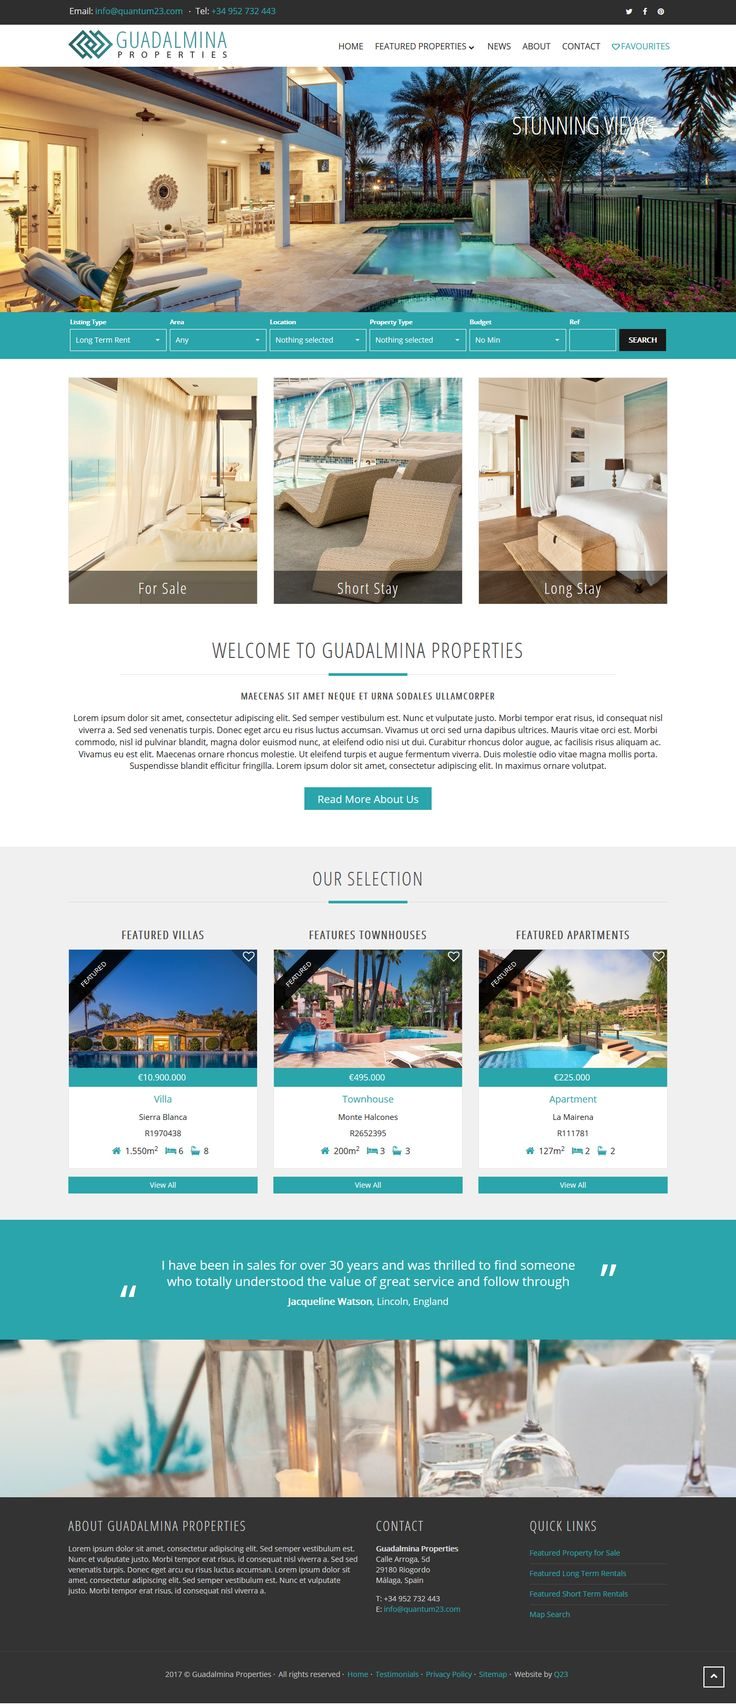 Guadalmina Theme - QRES On Demand pre-built theme for QRES Real Estate Web Solutions. #RealEstateSoftware #qresOD